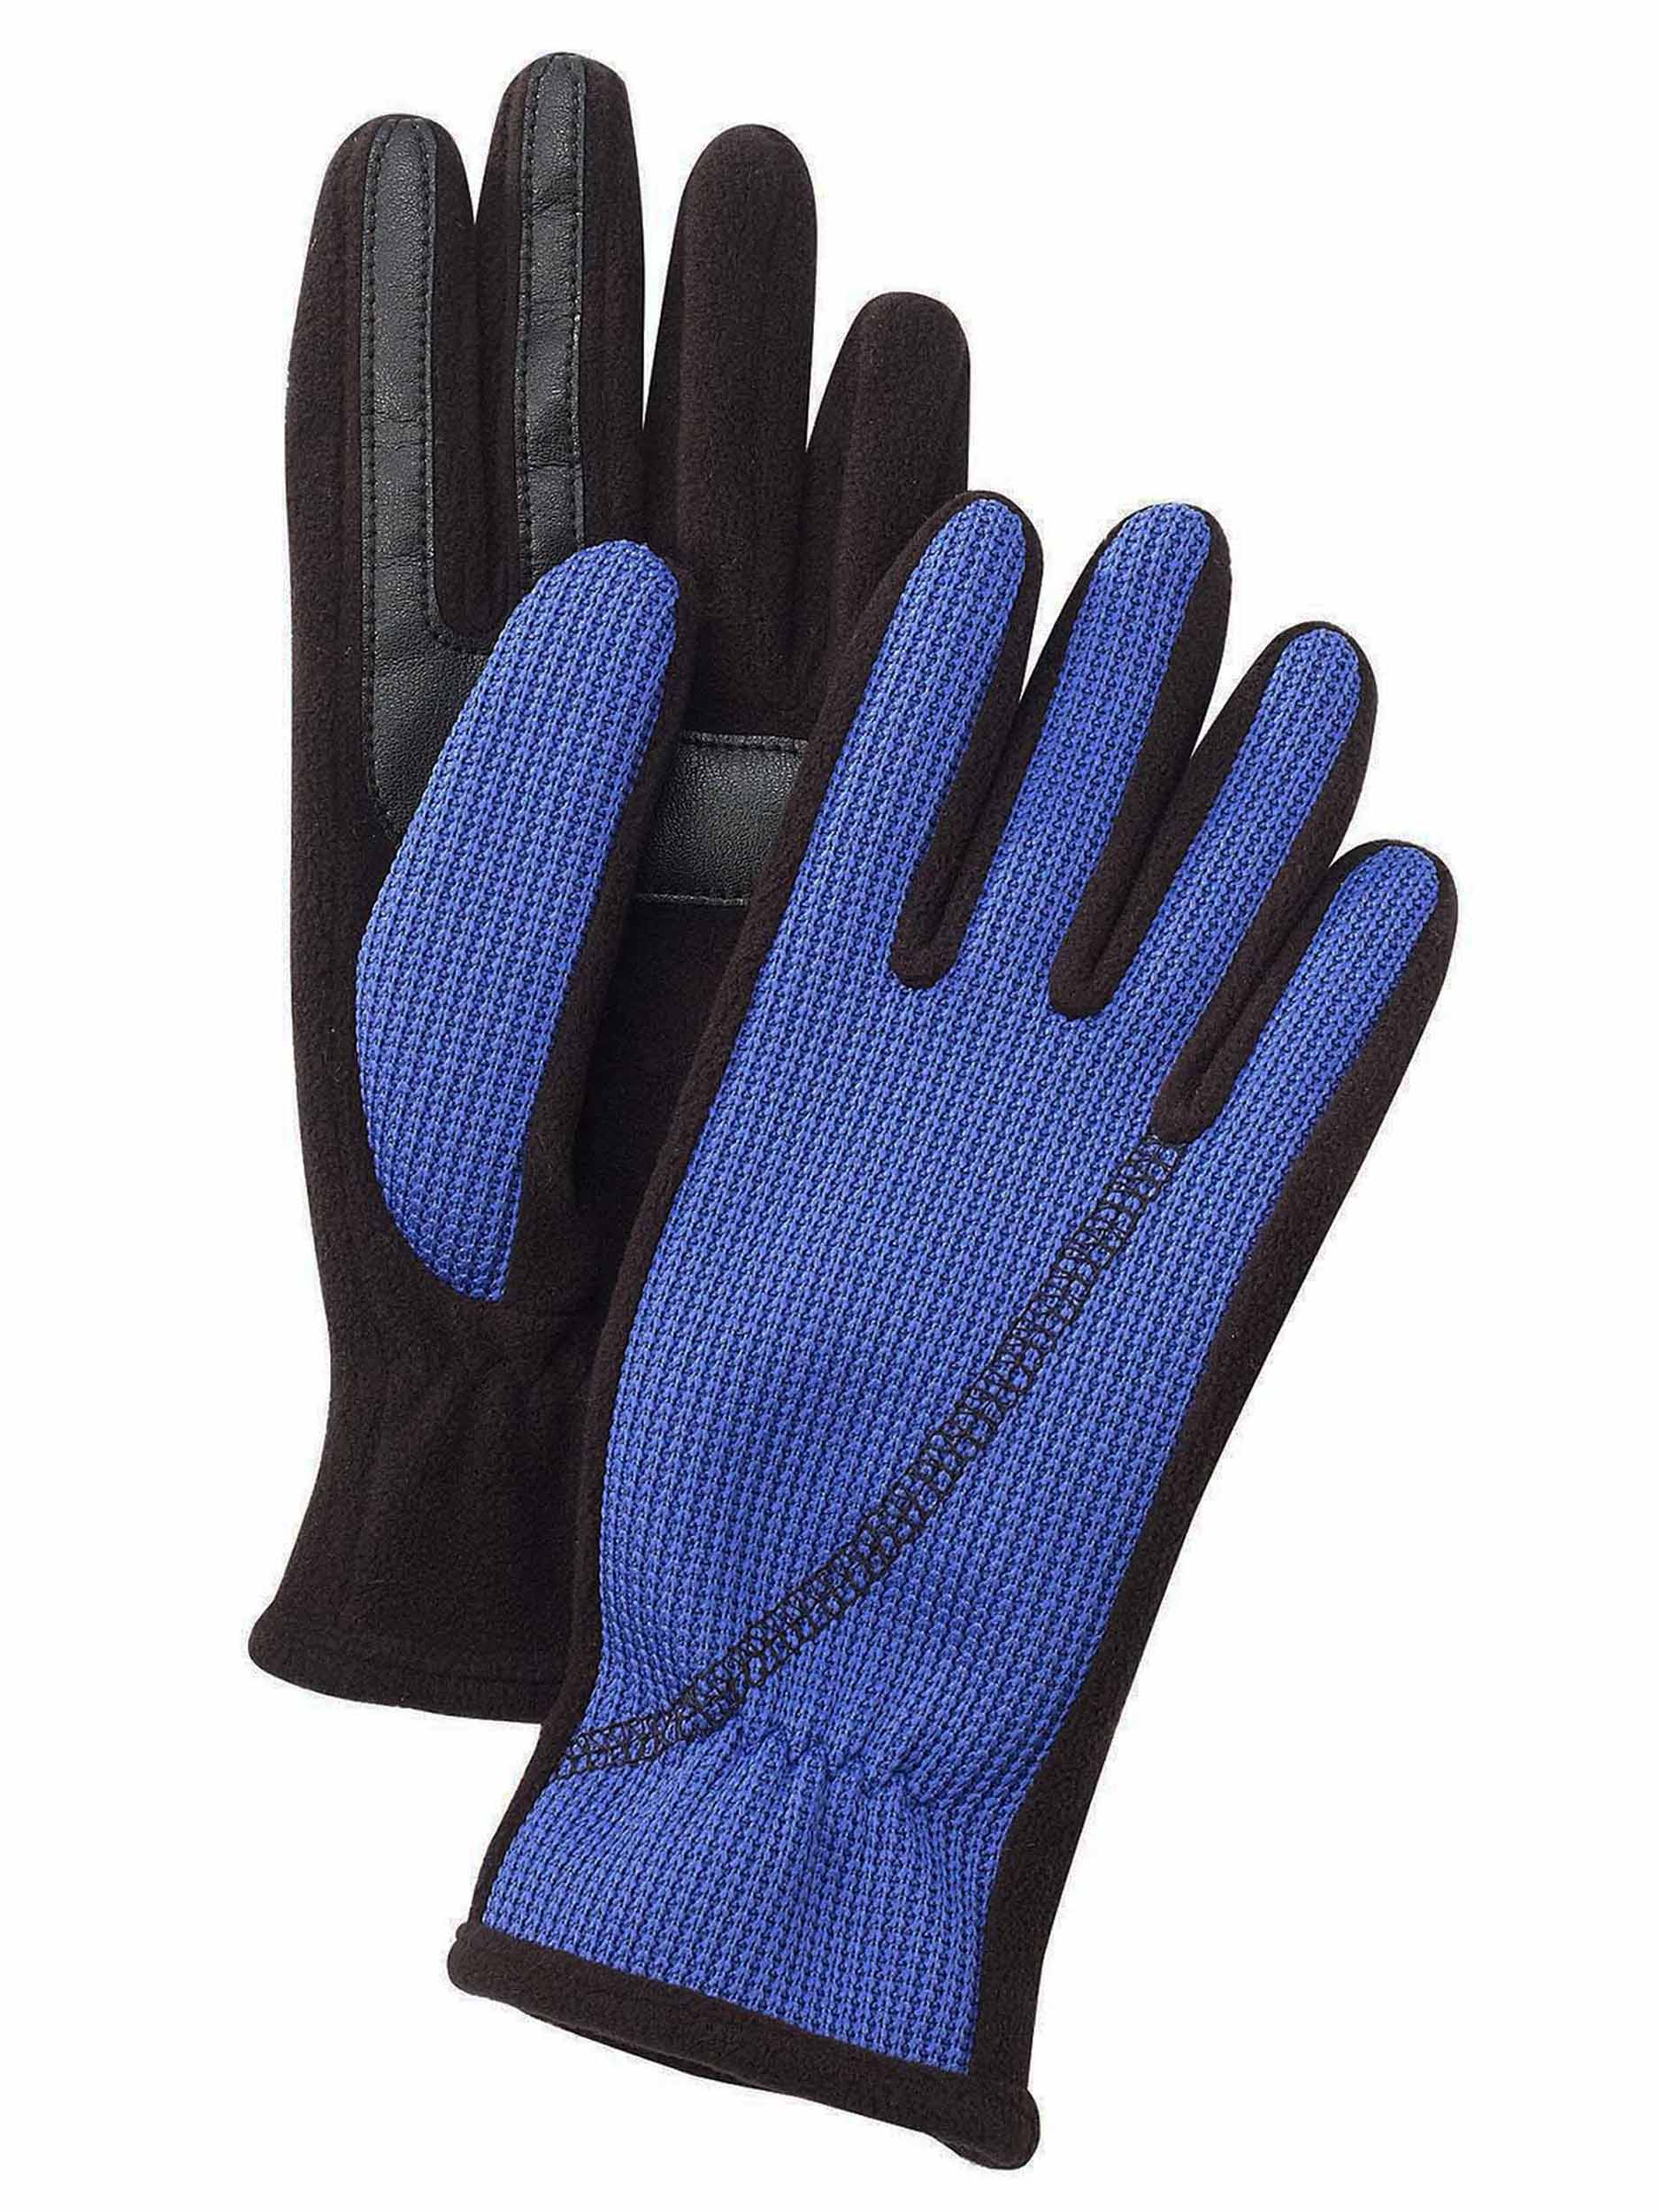 Isotoner Womens SmarTouch Active Stretch Winter Gloves - One Size - Blue Spark